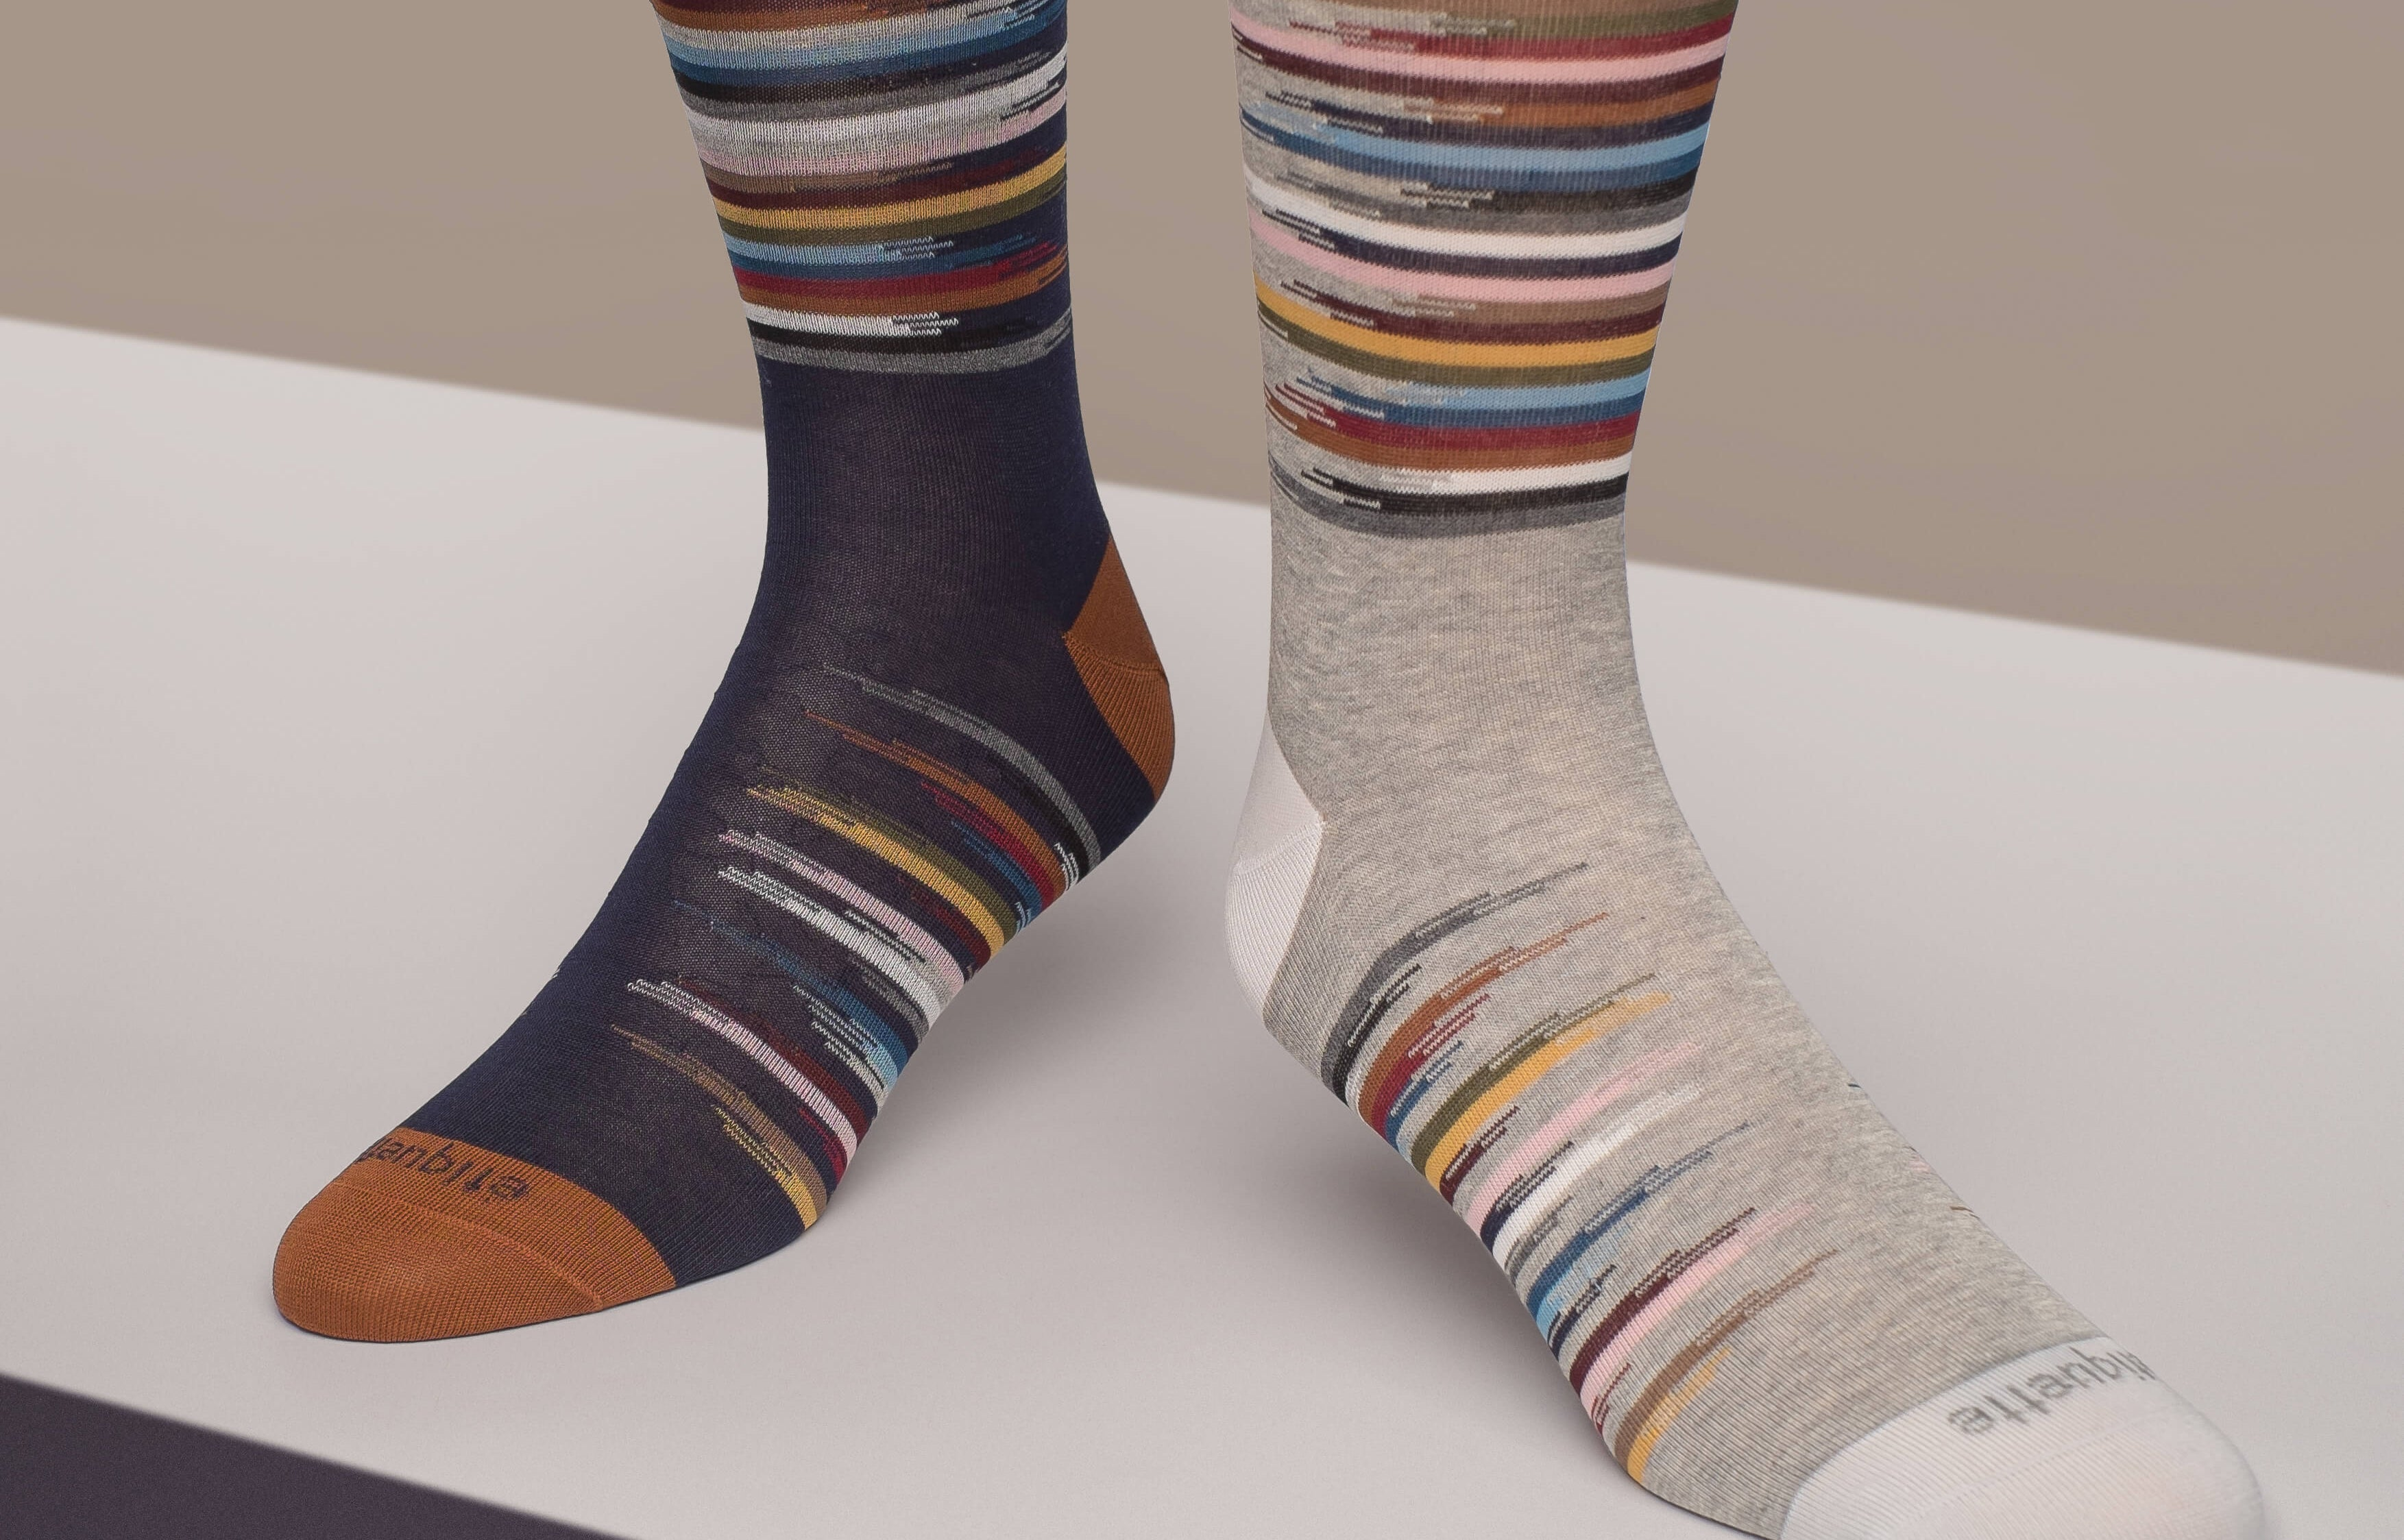 Men's Fashion Socks with Stylish Patterns and Colors by Etiquette Clothiers